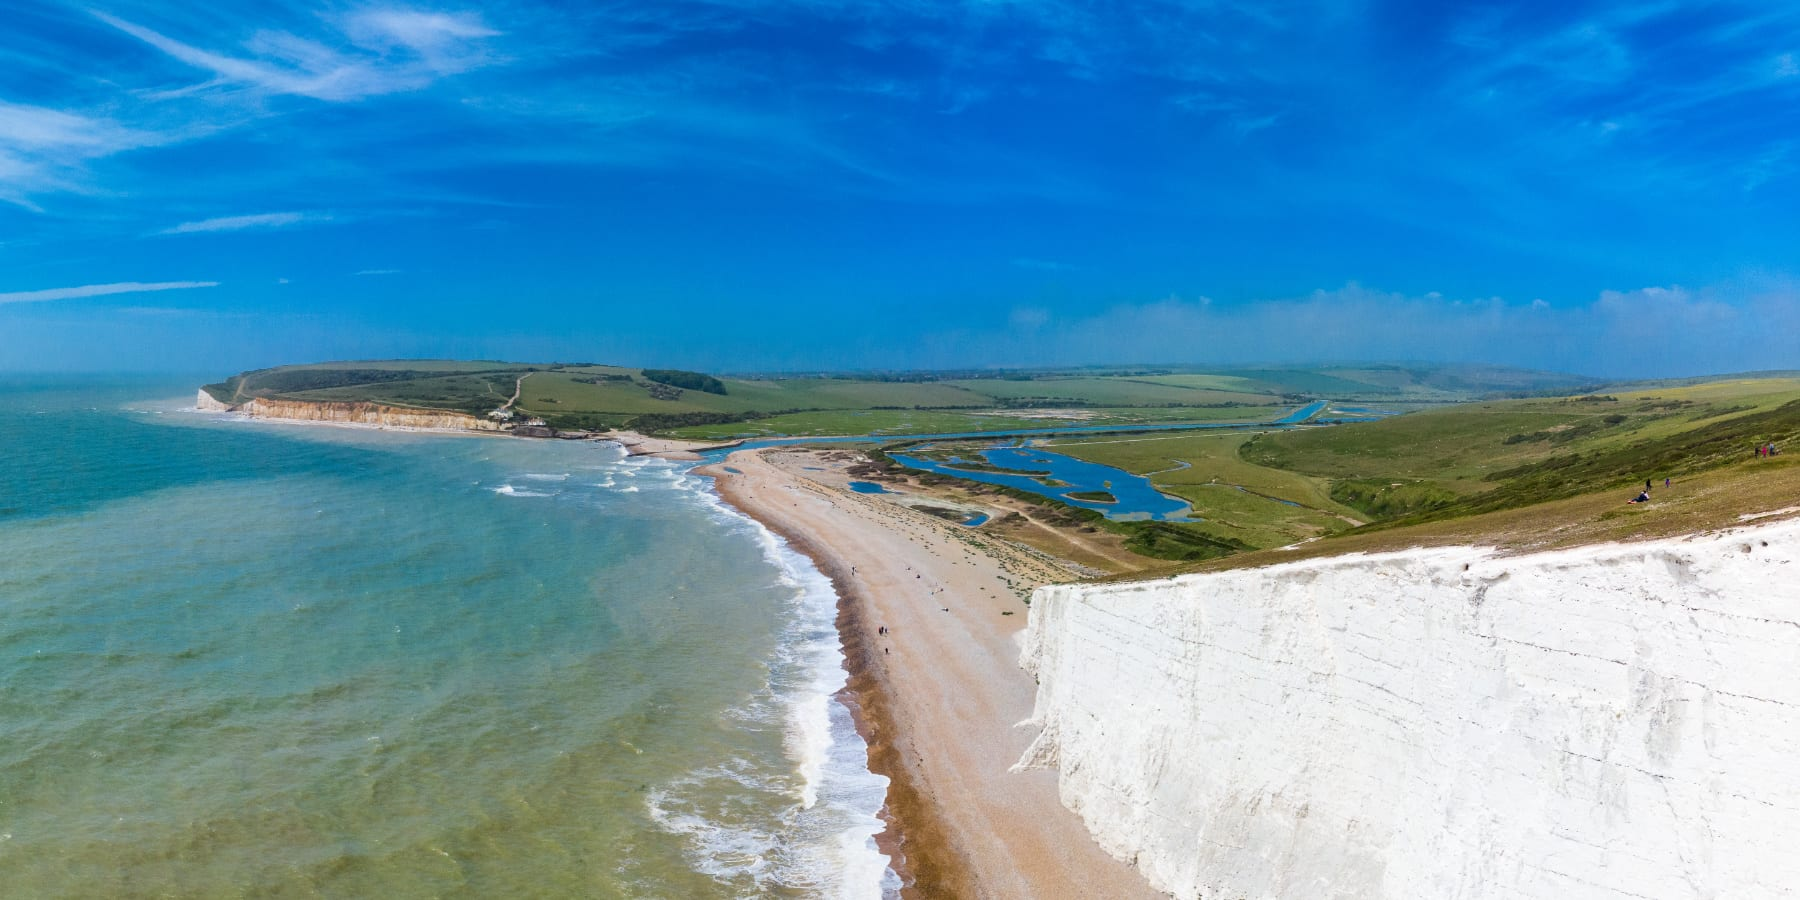 White cliffs overlooking sea